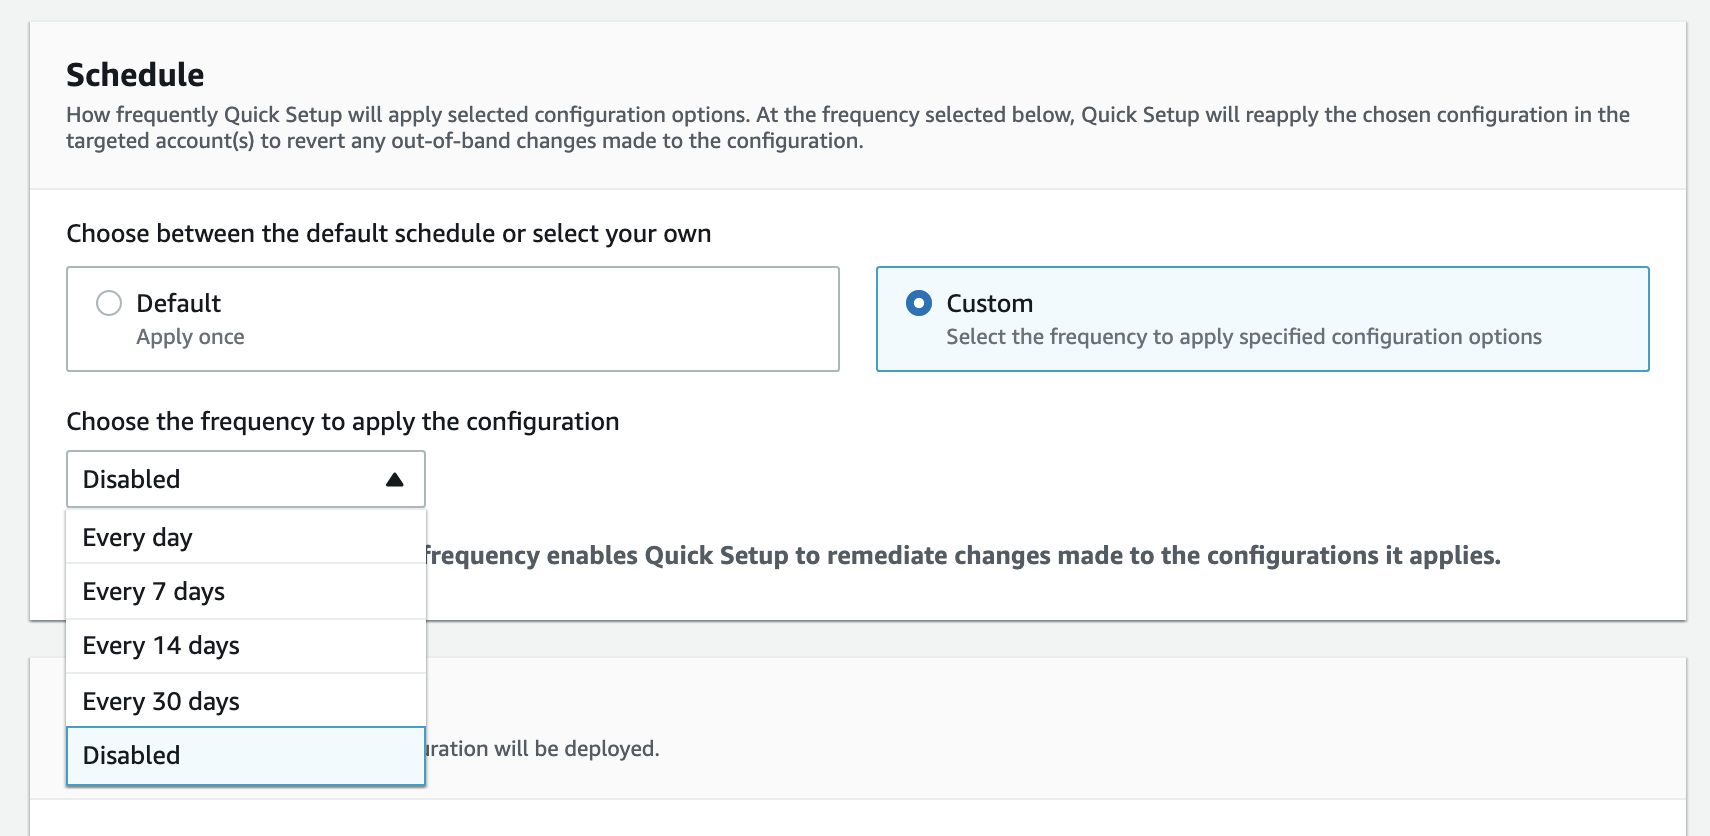 The schedule section allows you to choose the default schedule to apply configuration options only once, or select the custom option to apply configurations every day, every 7 days, every 14 days, every 30 days, or disable it